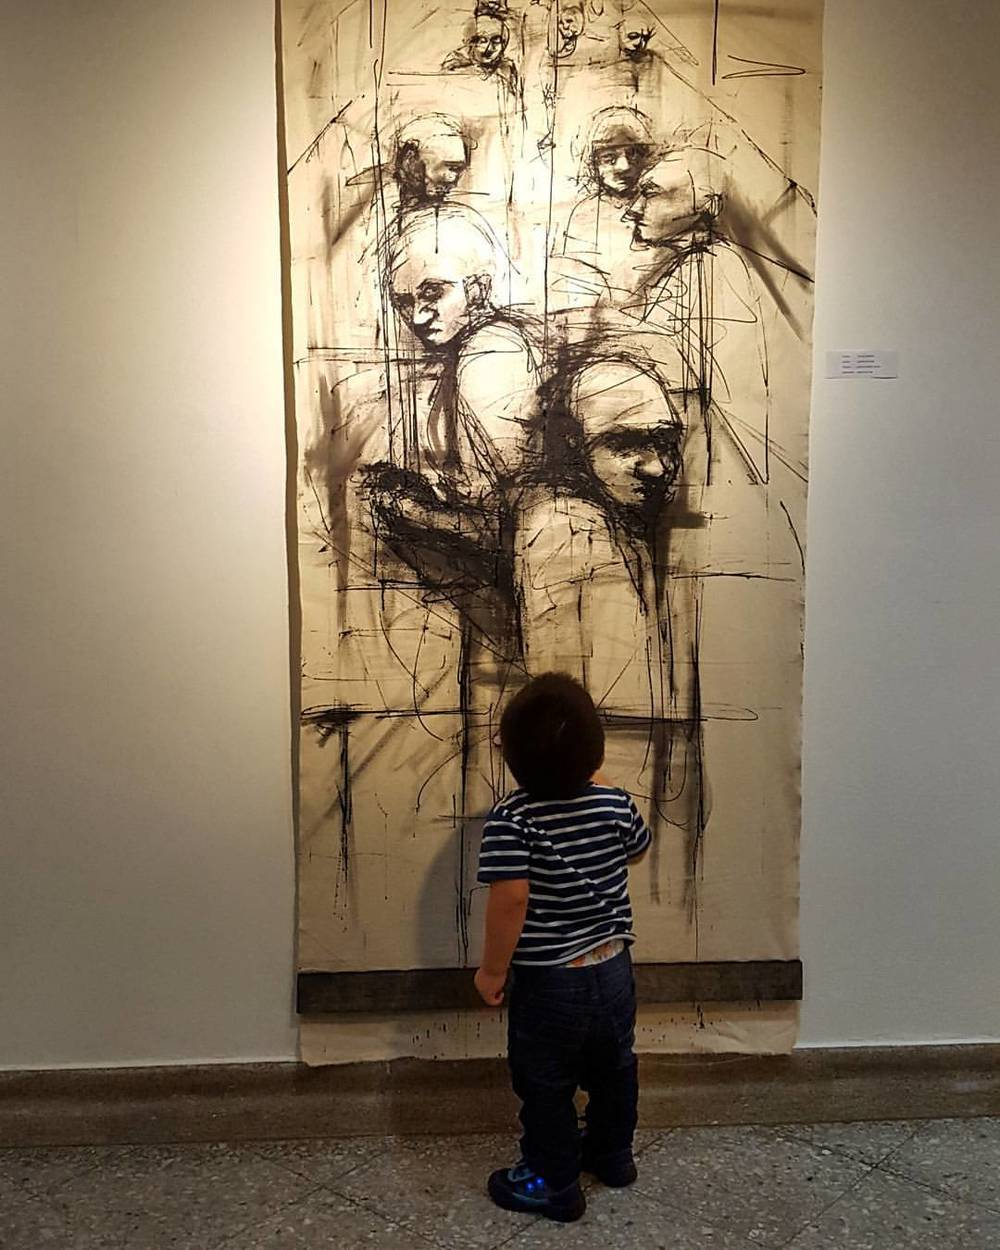 Children gazing upon an art painting inside a gallery by Carlos Delgado